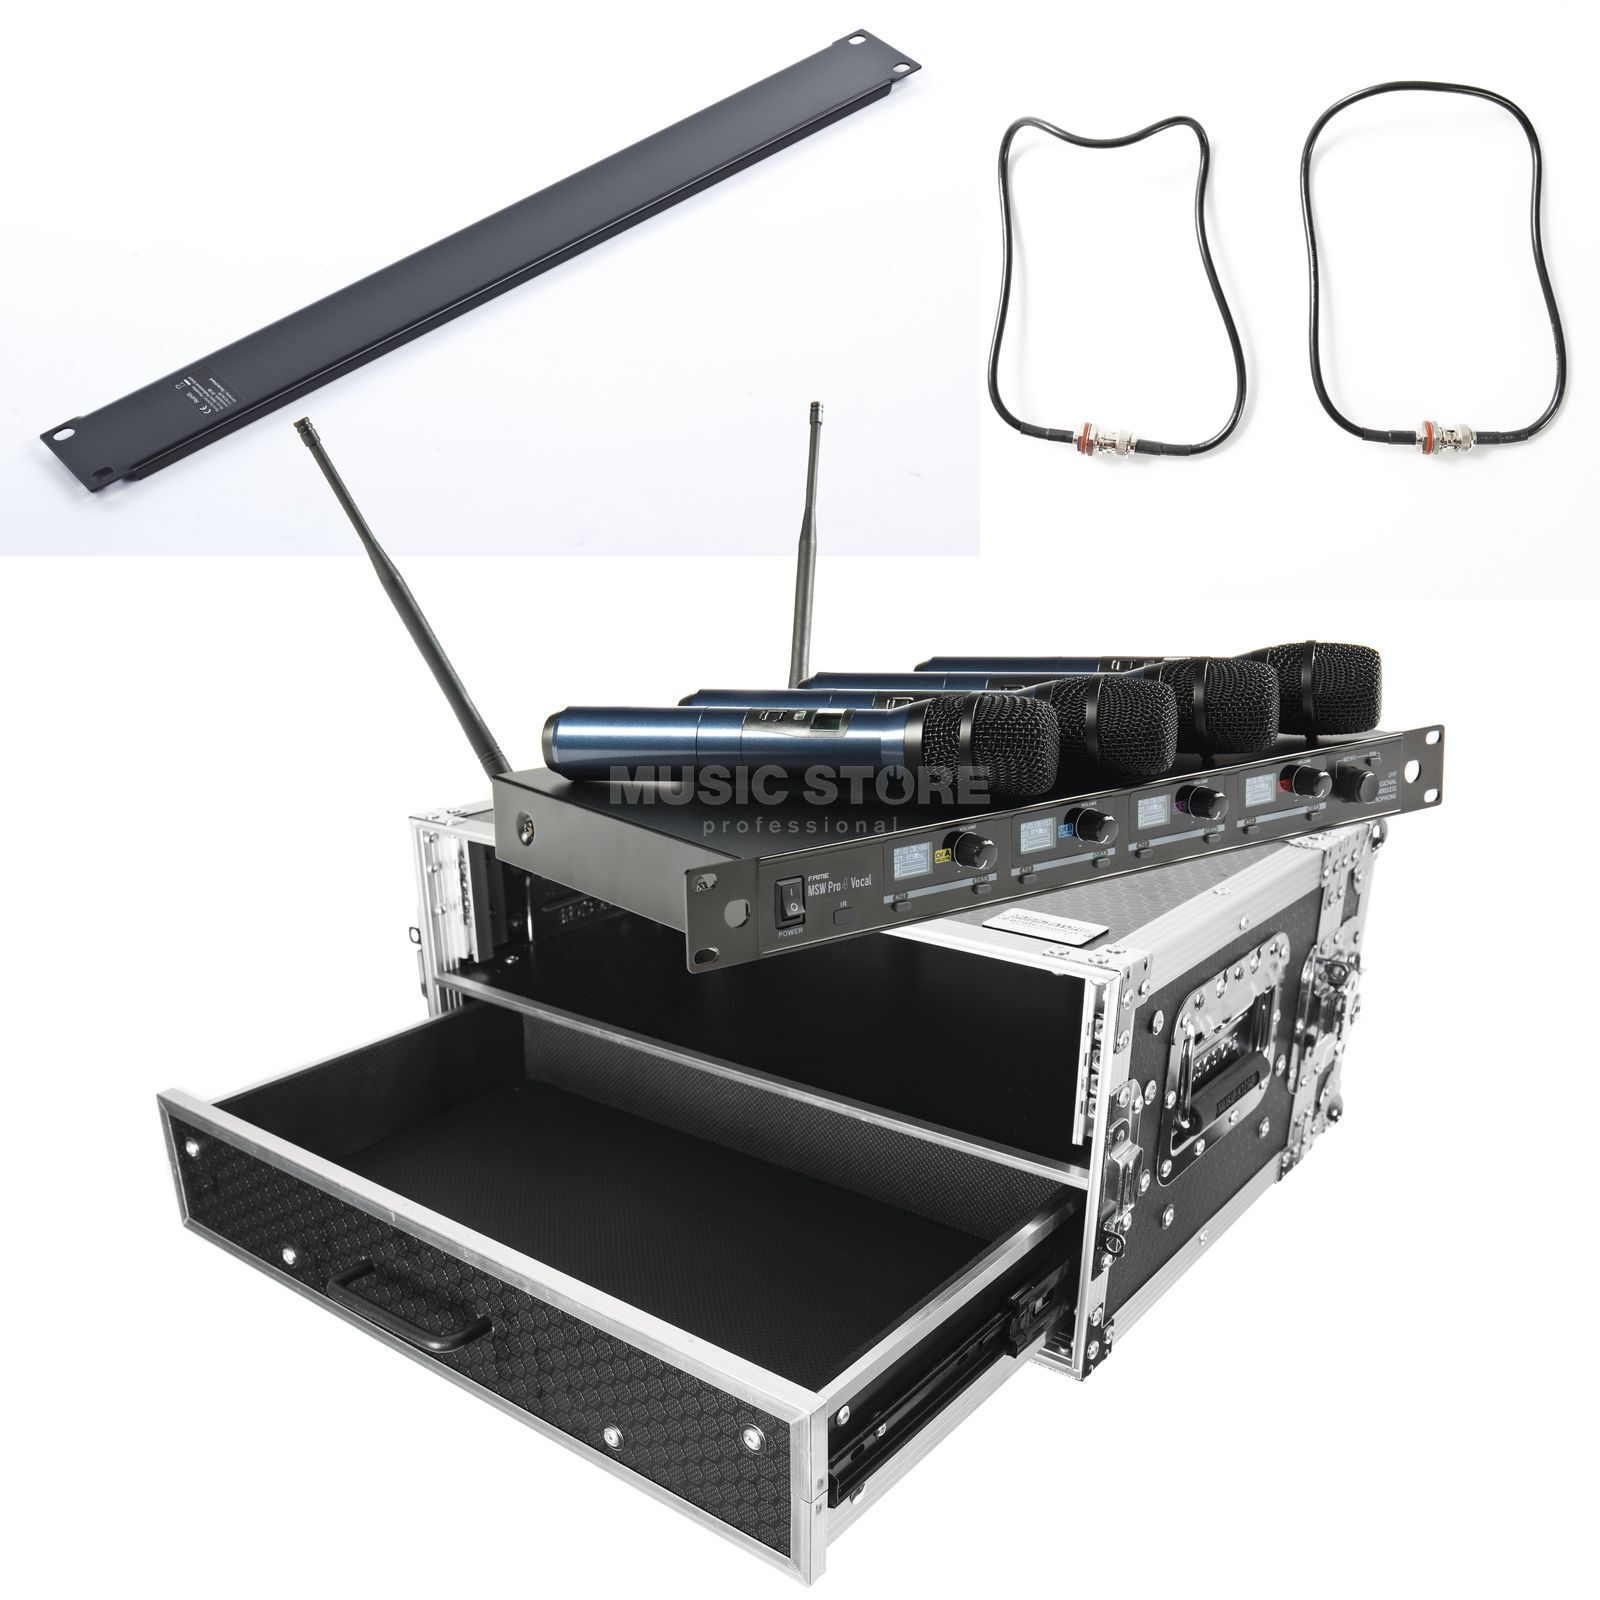 Turbosound IP 1000 + Cover - Set Product Image